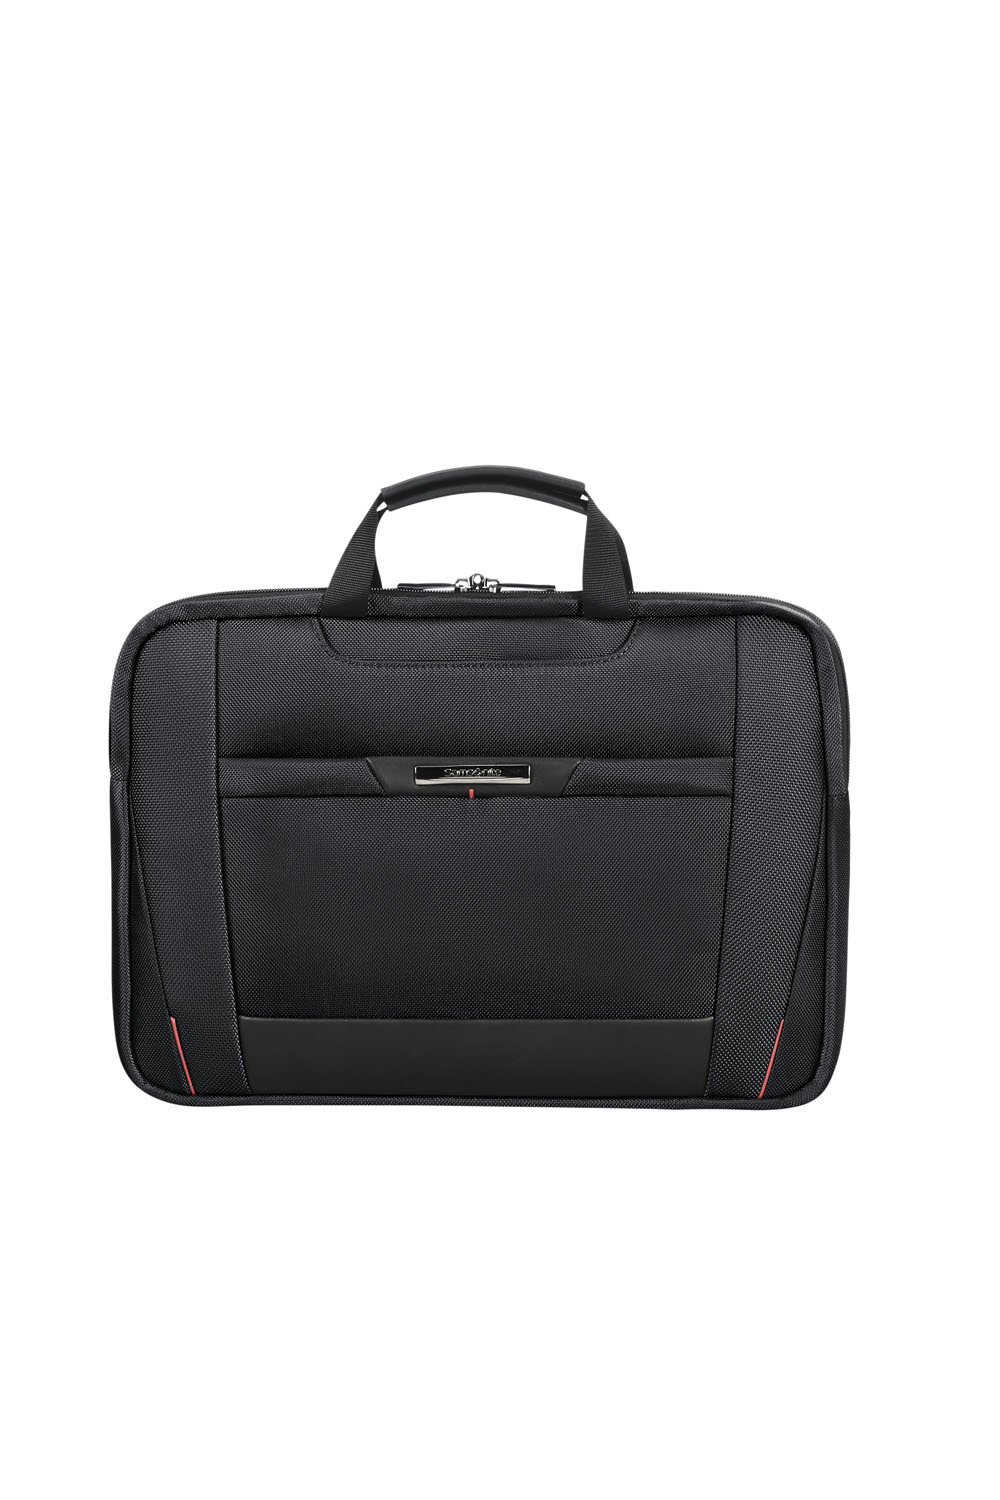 samsonite pro dlx 5 laptoptasche 15 6 black jetzt auf. Black Bedroom Furniture Sets. Home Design Ideas